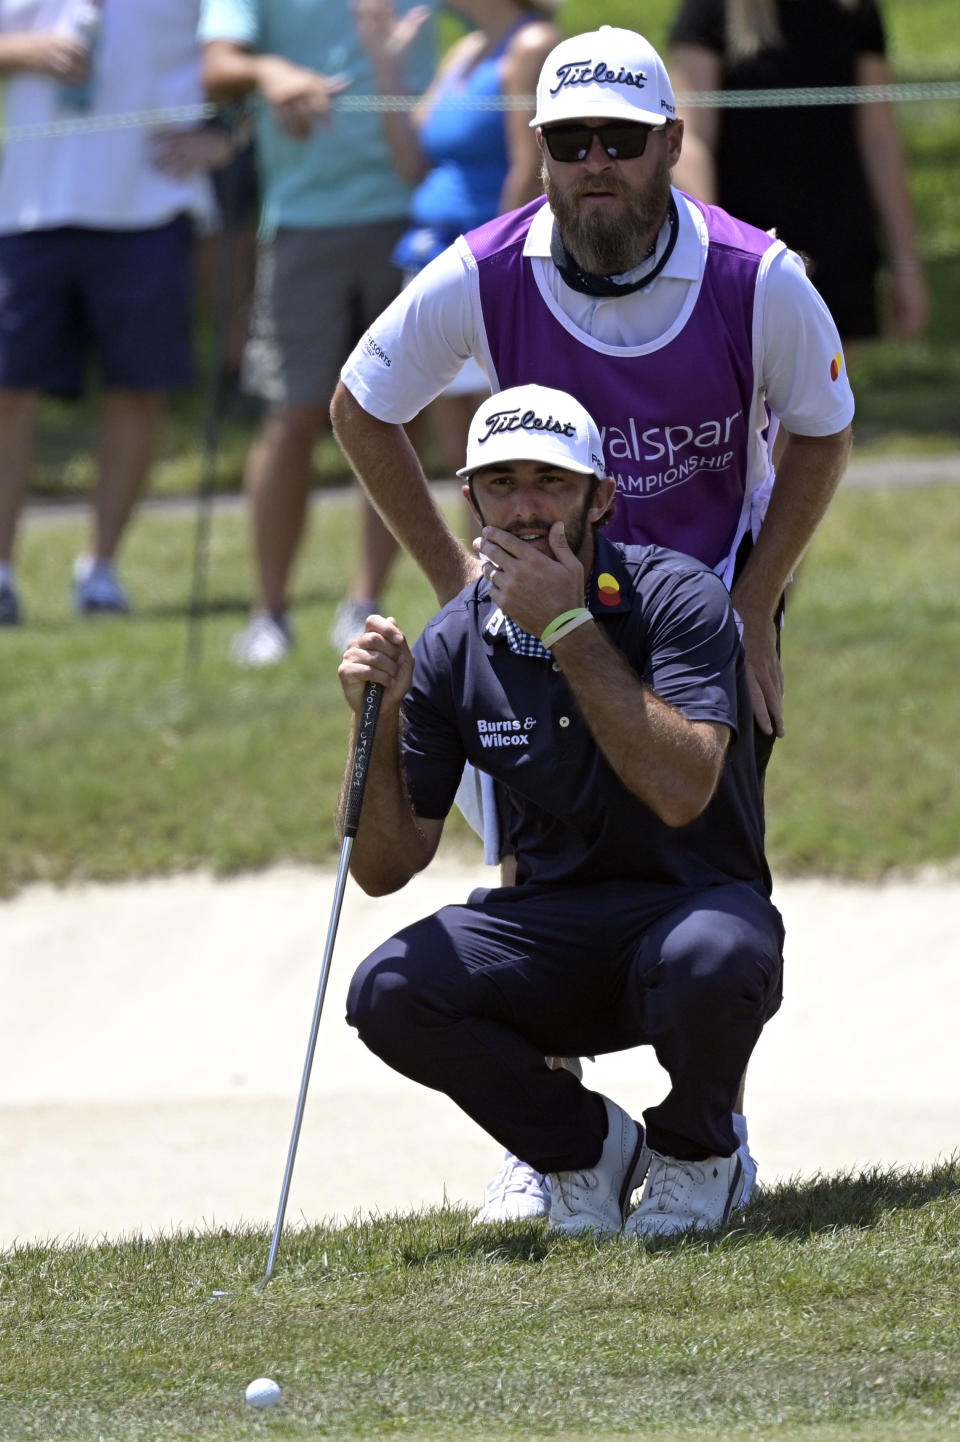 Max Homa, front, and his caddie line up a shot on the fringe of the first green during the final round of the Valspar Championship golf tournament, Sunday, May 2, 2021, in Palm Harbor, Fla. (AP Photo/Phelan M. Ebenhack)